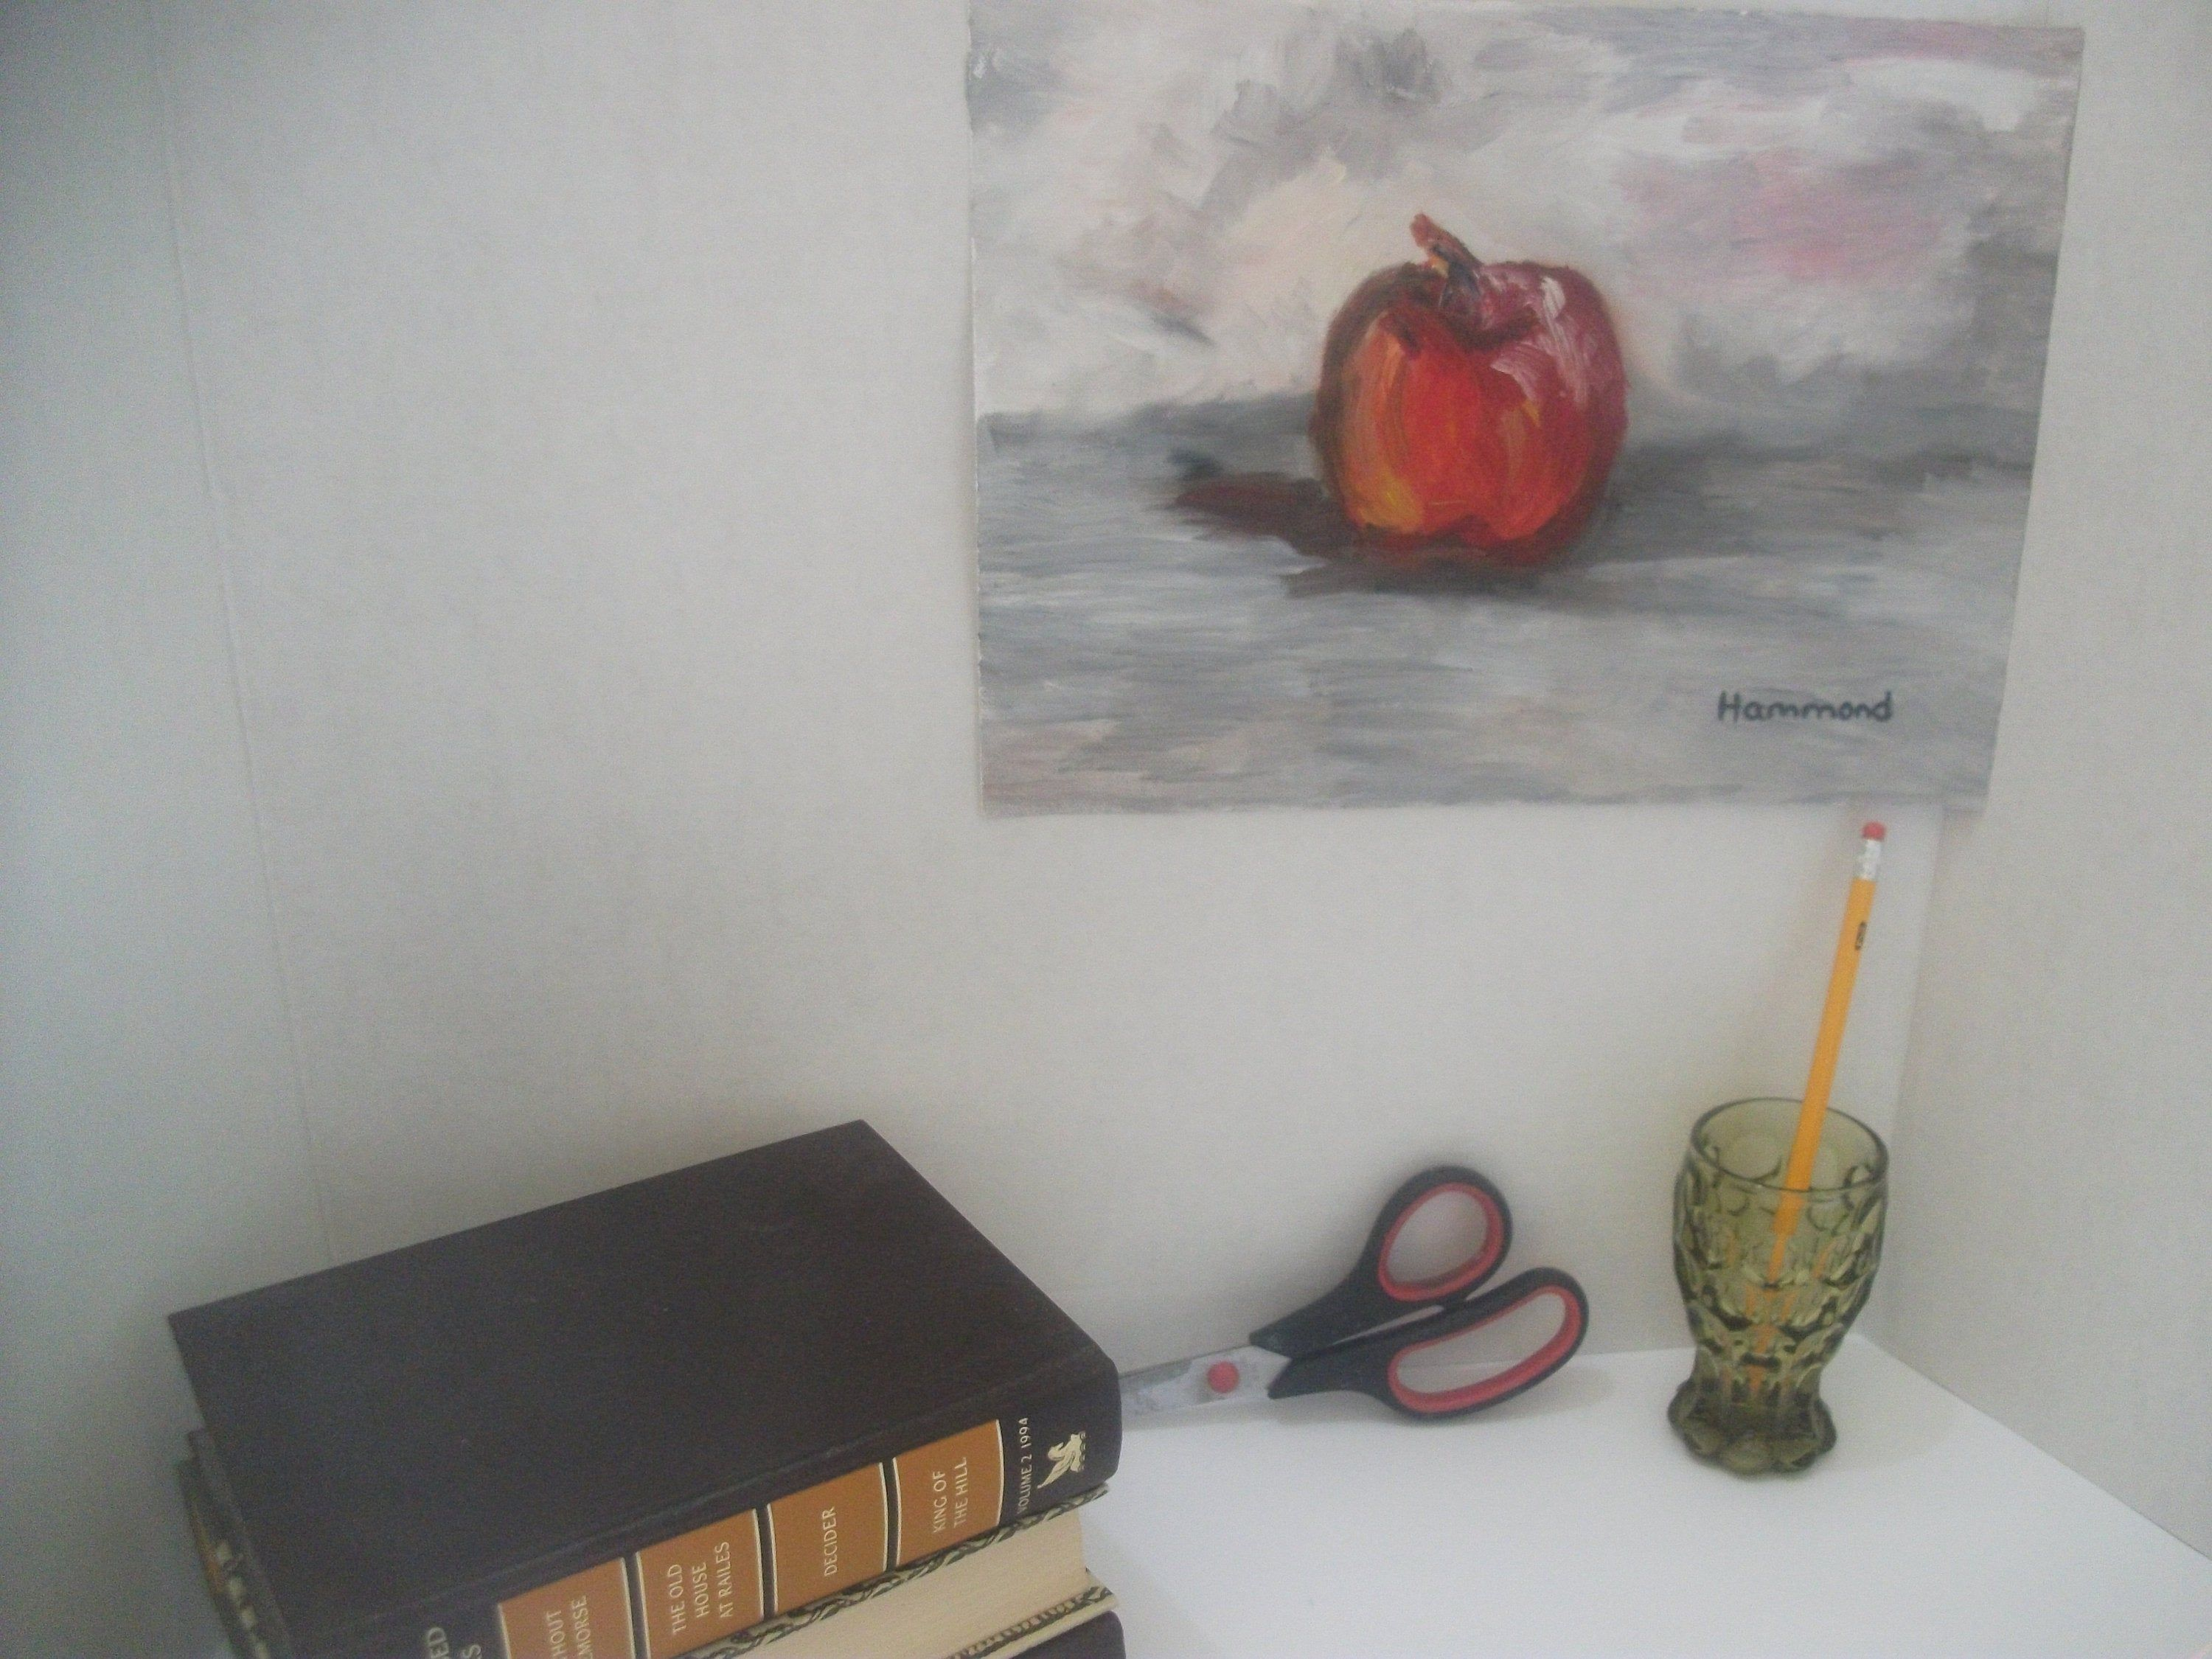 A Red Apple On A Gray Background Original Art By Gina Hammond Etsy In 2020 Original Oil Painting Love Painting Images Original Art